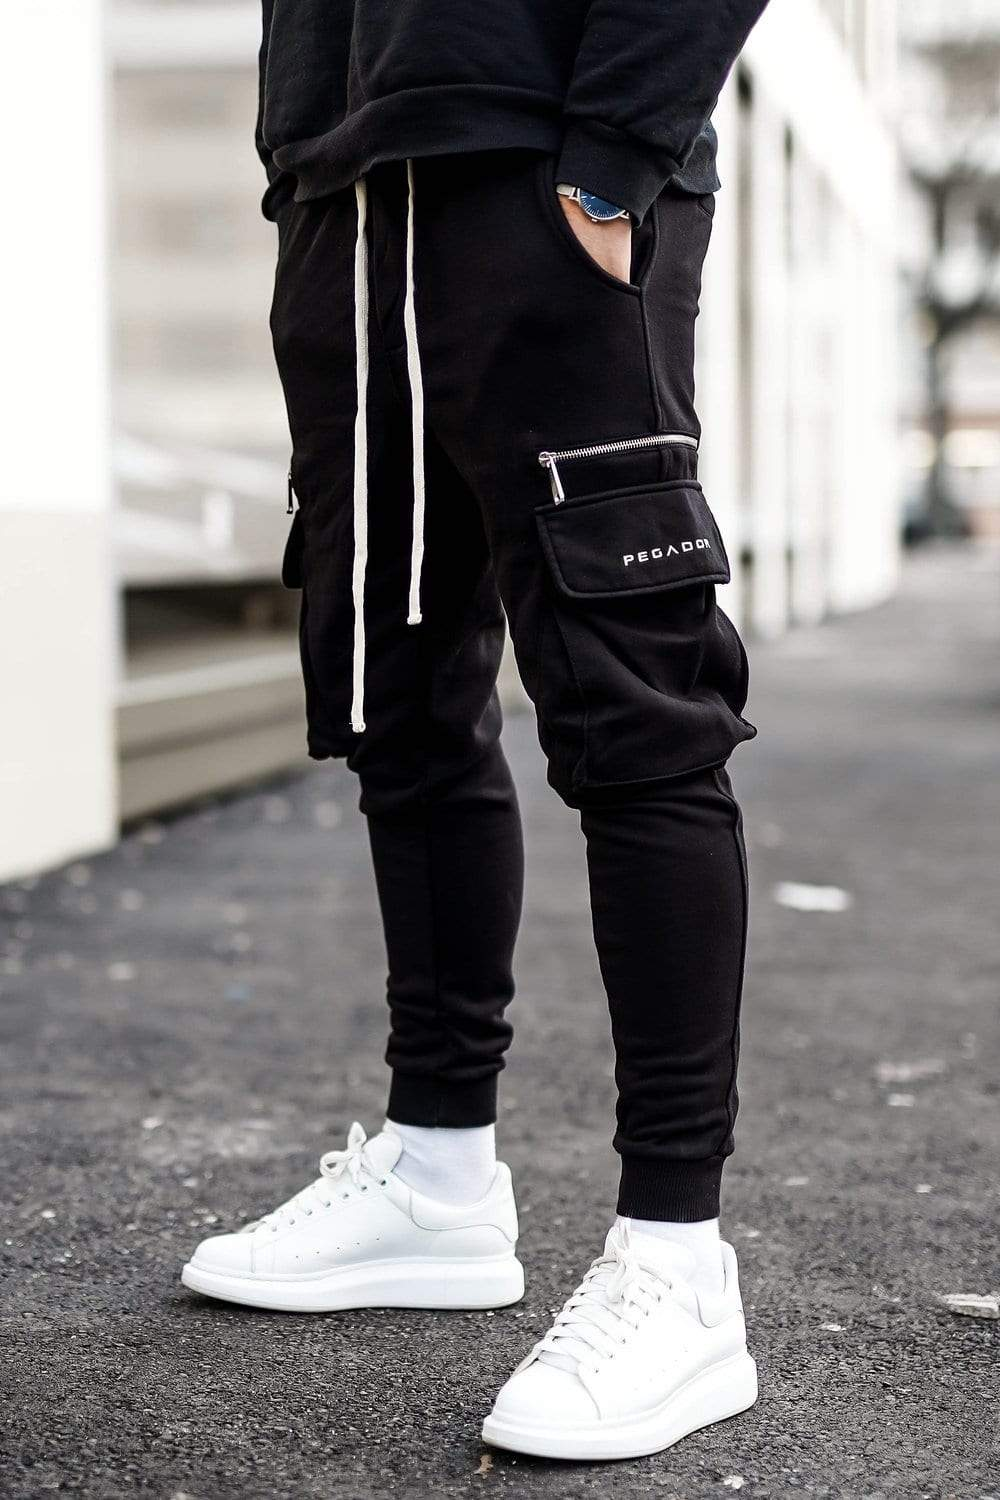 Vaio Cargo Pants Black Sweat Pants PEGADOR